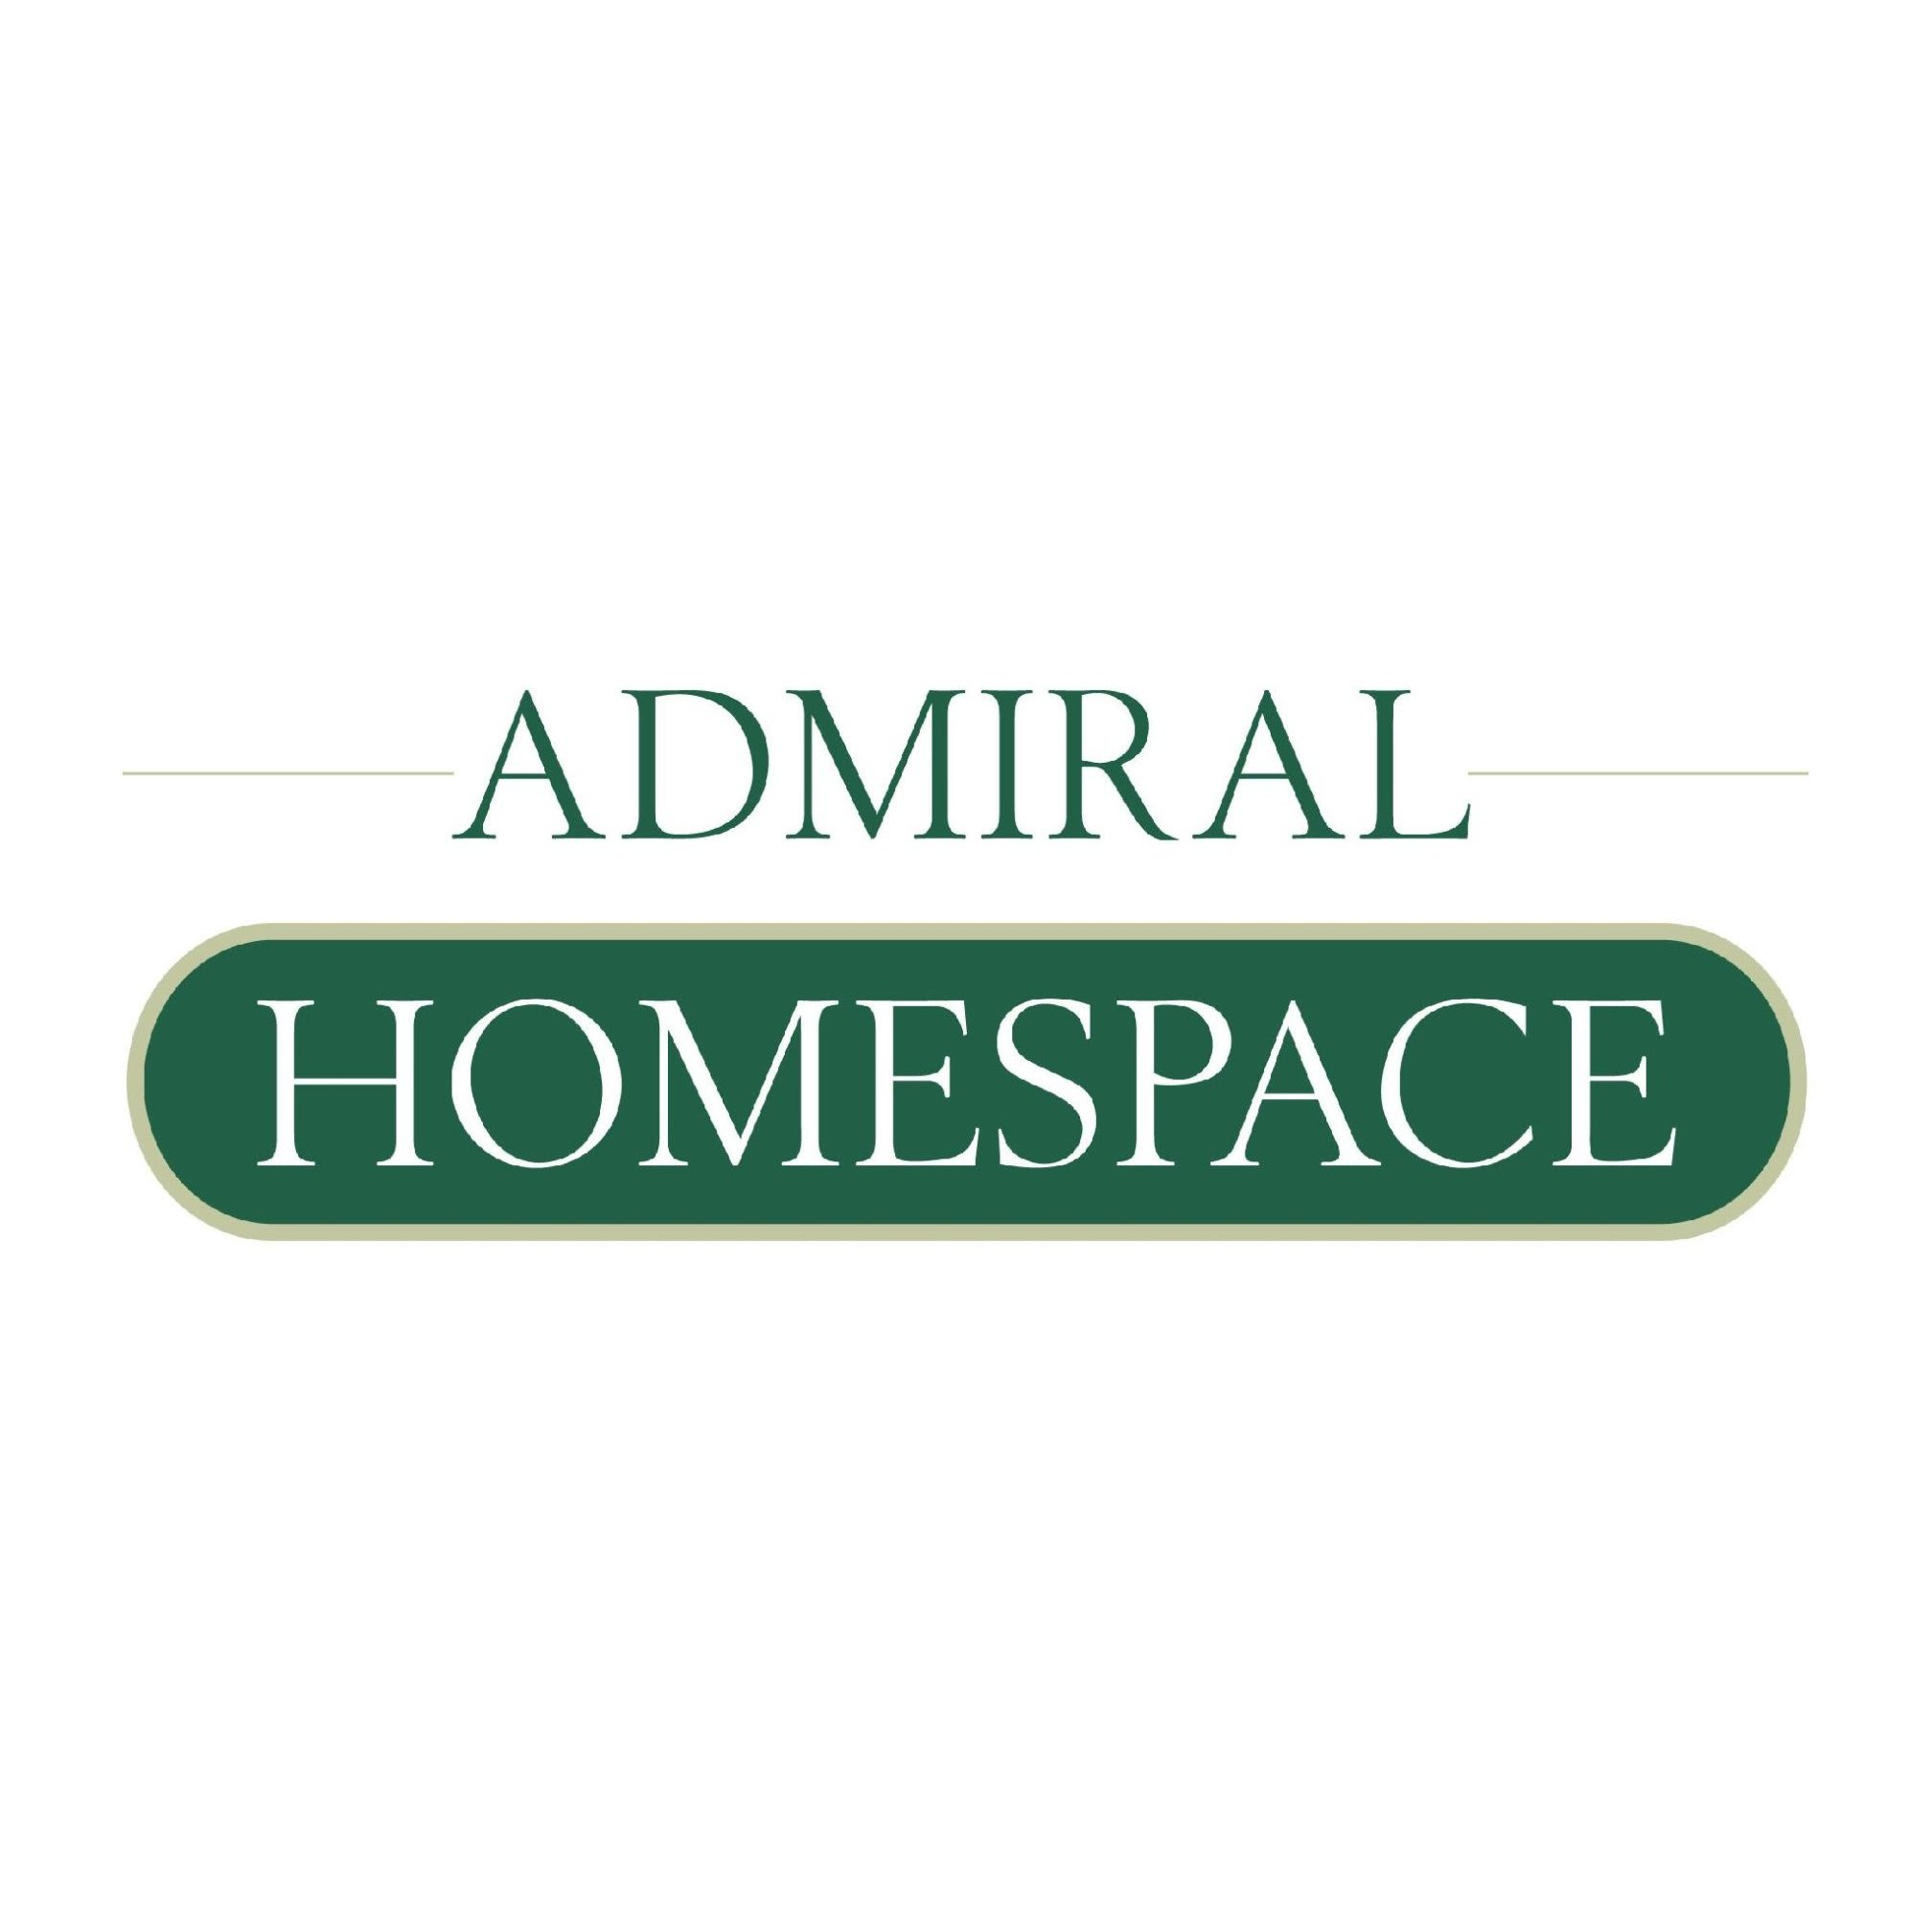 Admiral Homespace - Huntingdon, Cambridgeshire PE28 4FL - 01480 456789 | ShowMeLocal.com